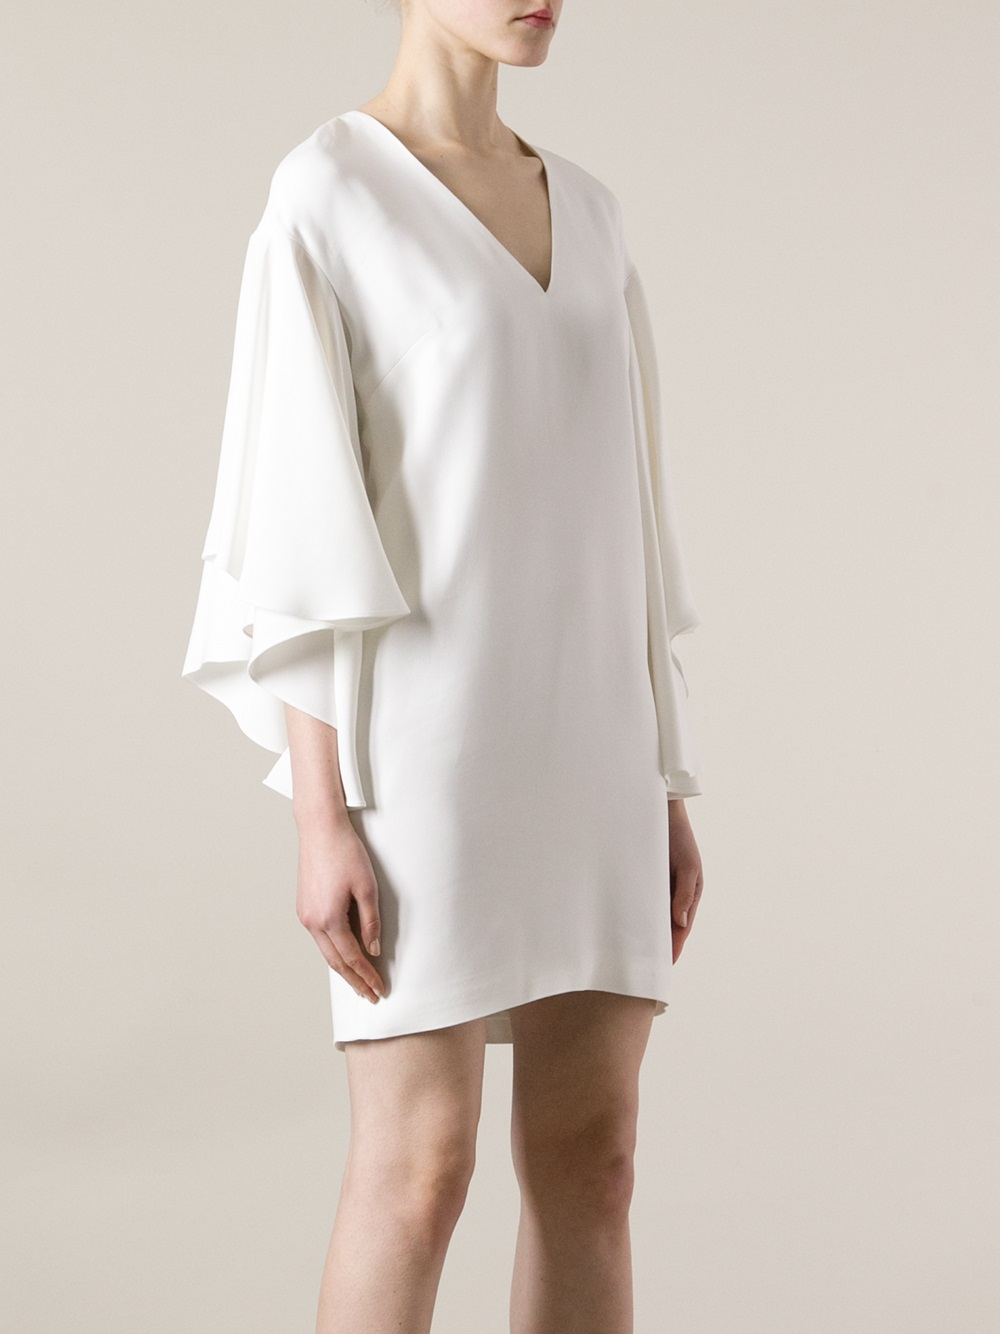 White Tunic Dress | Dress images